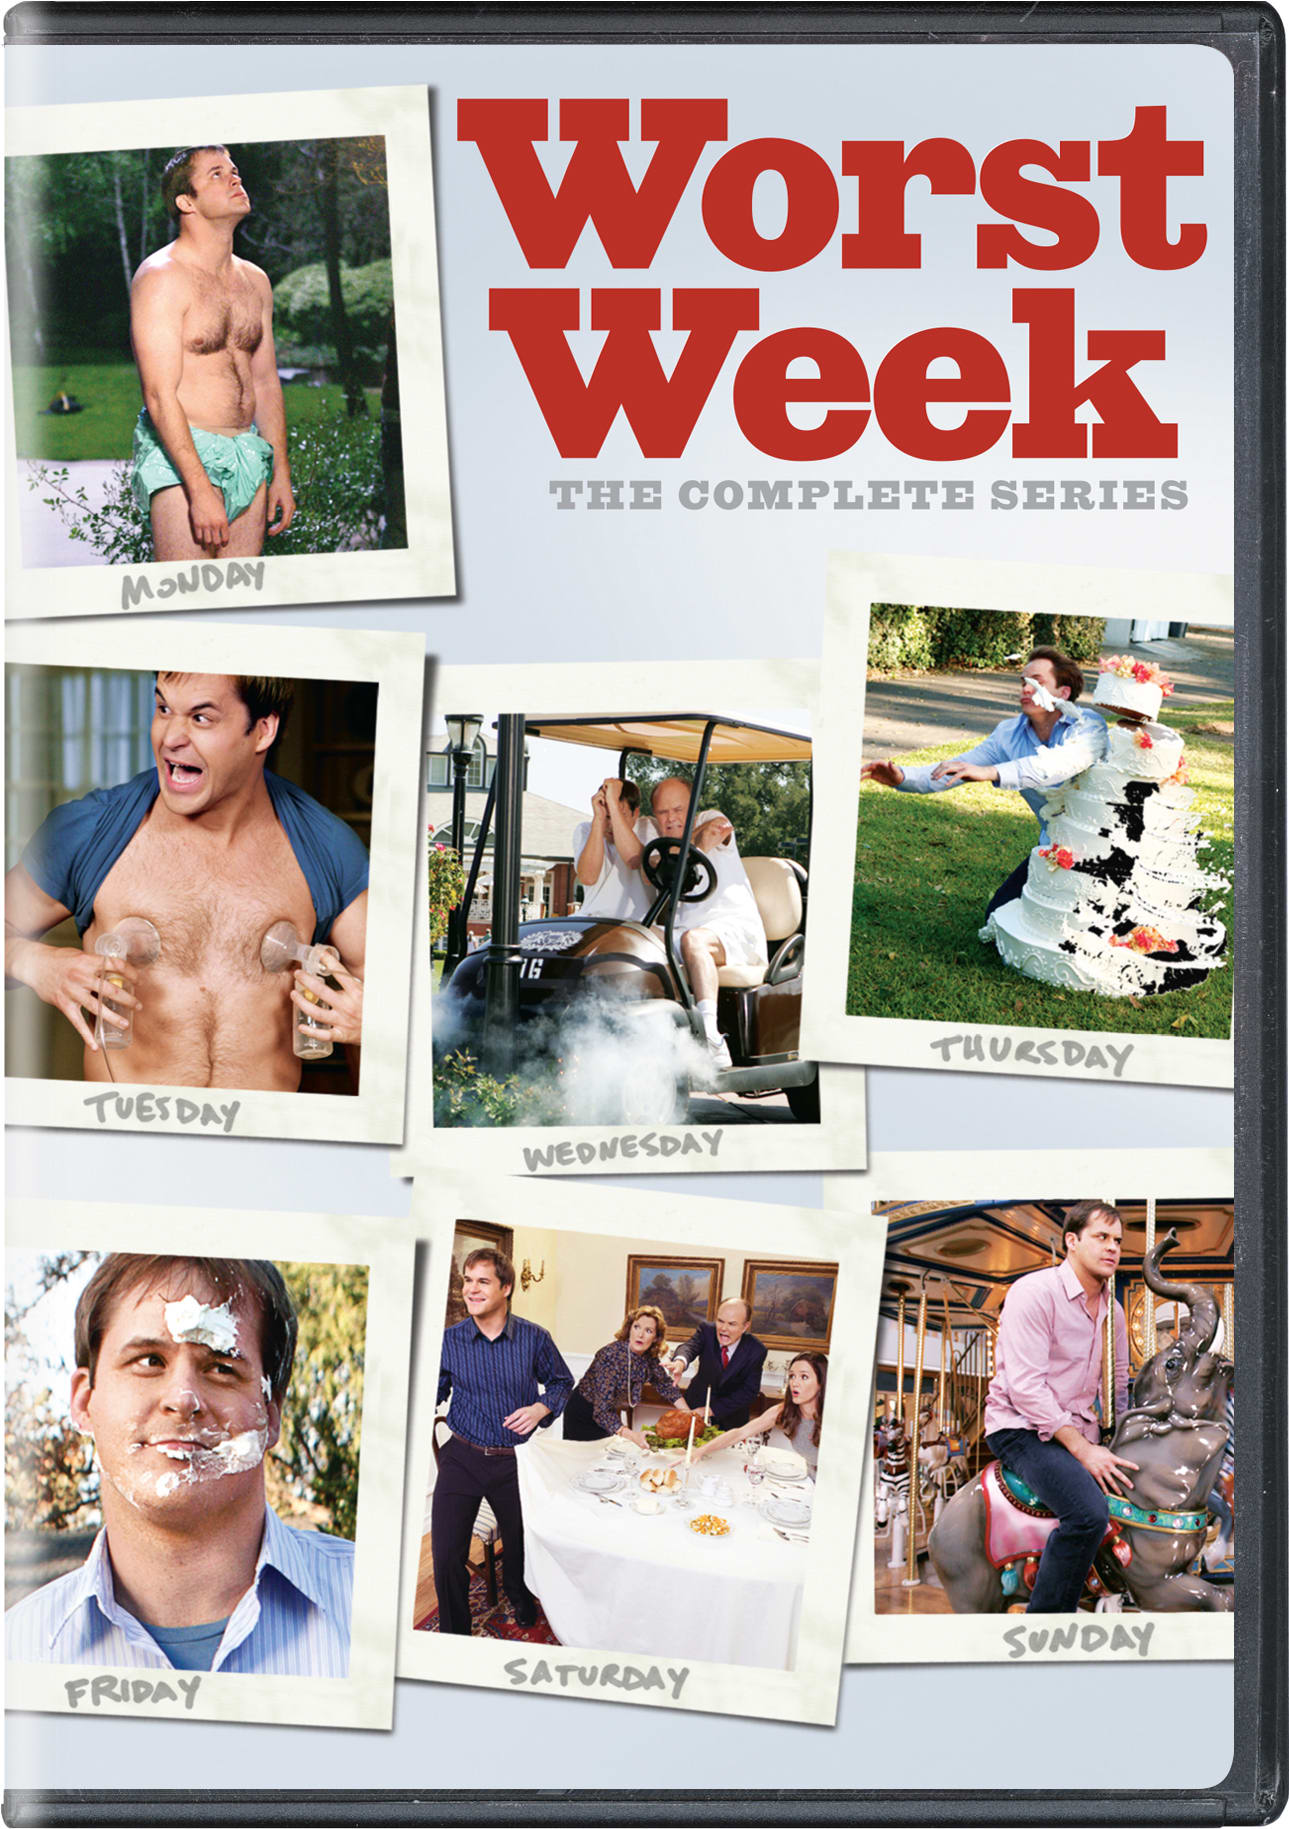 Worst Week: The Complete Series [DVD]